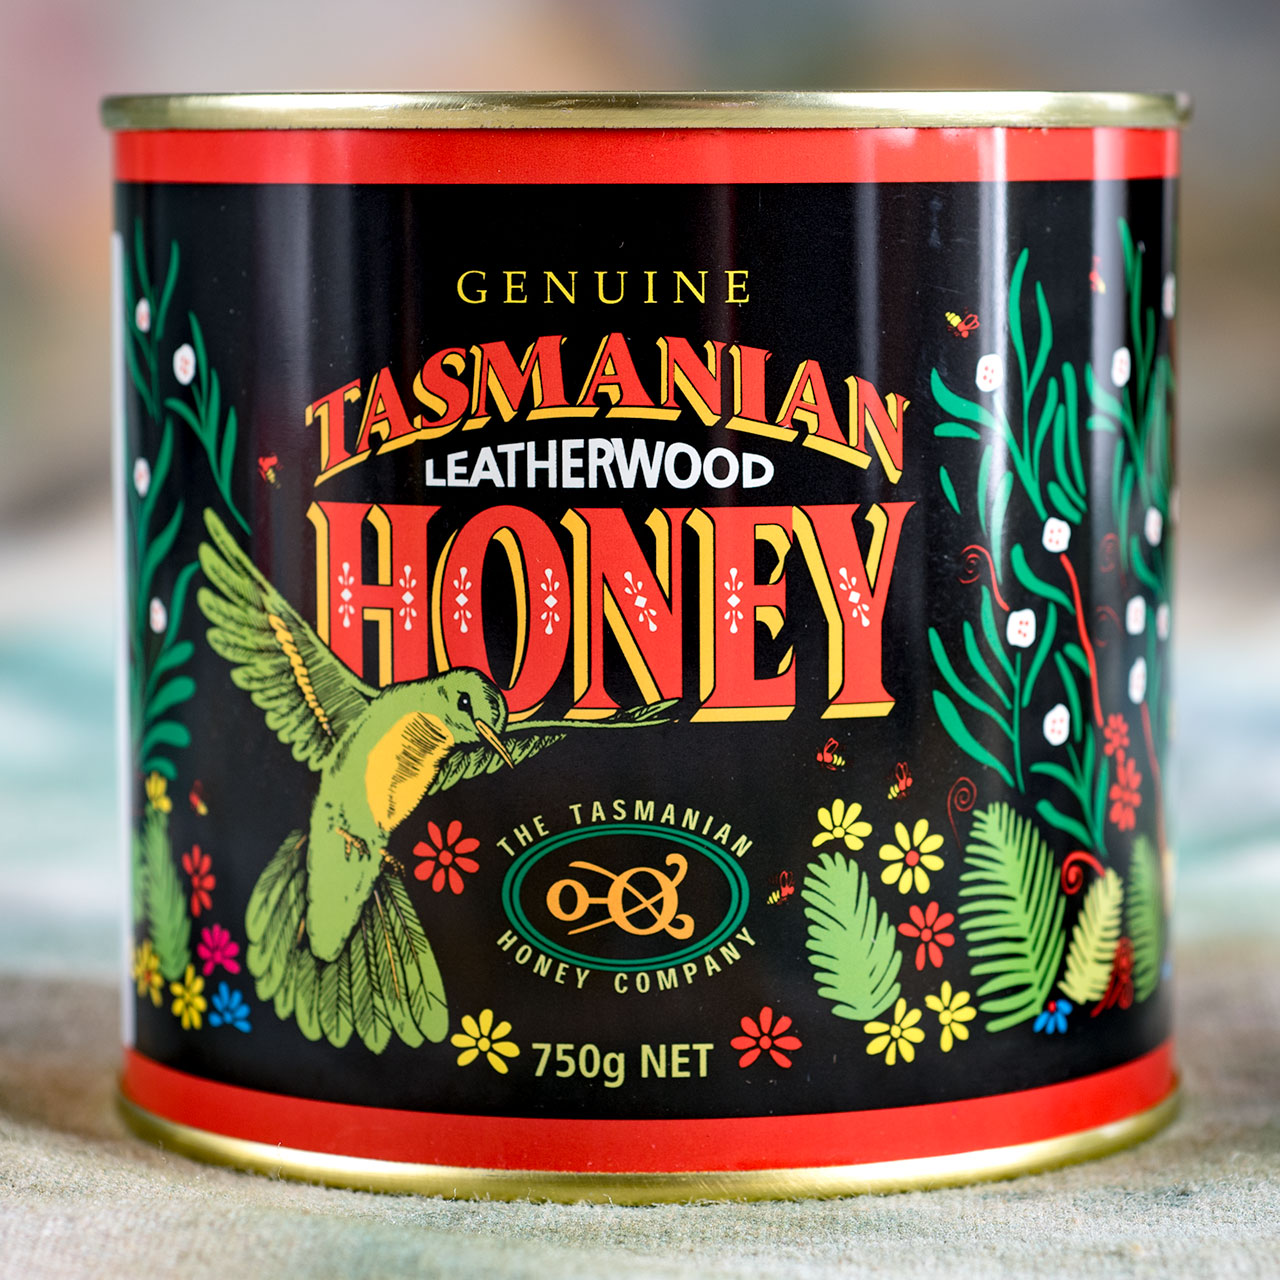 Tasmanian Leatherwood Honey - 750G